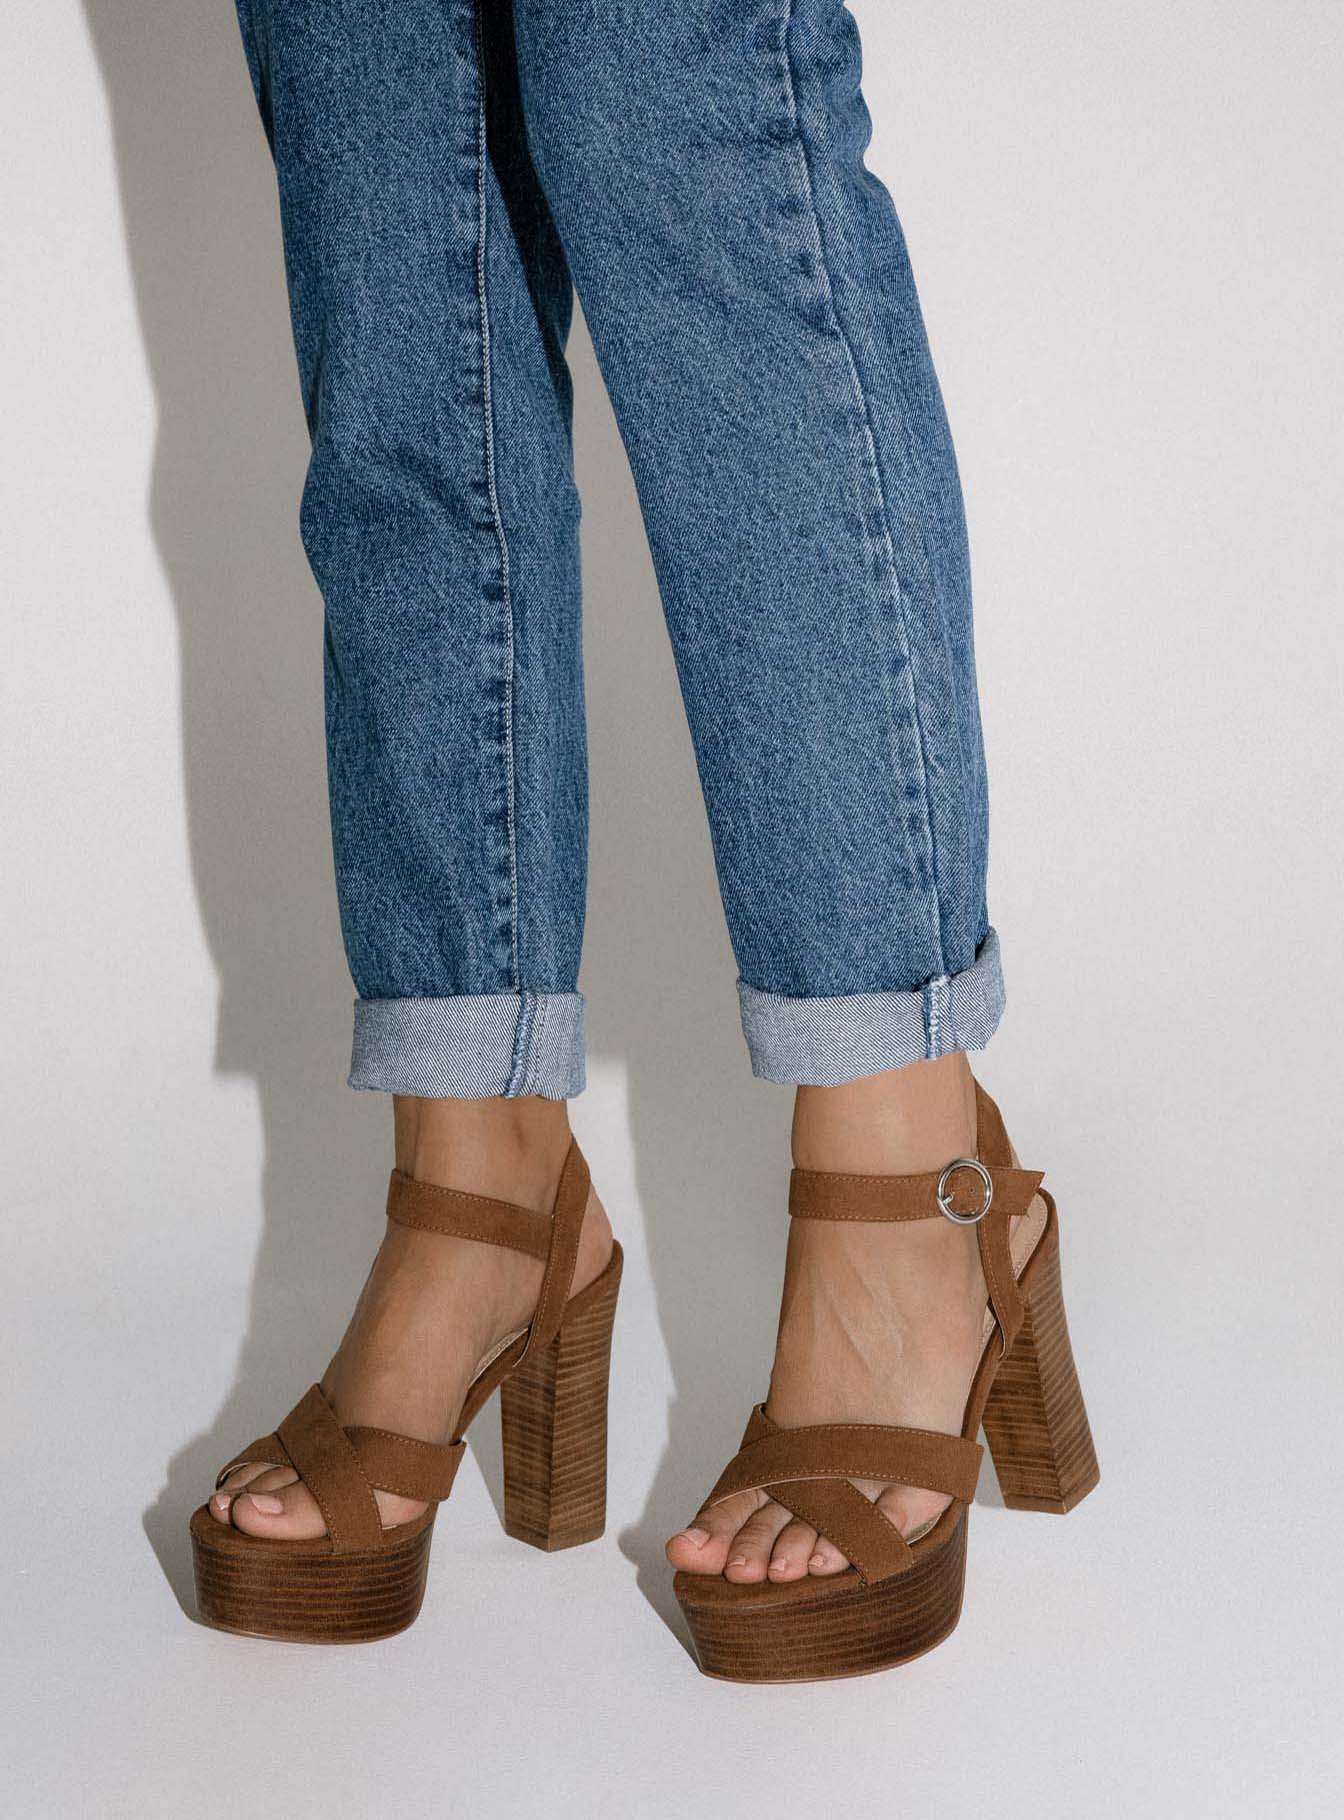 Therapy Selby Tan Faux Suede Heel